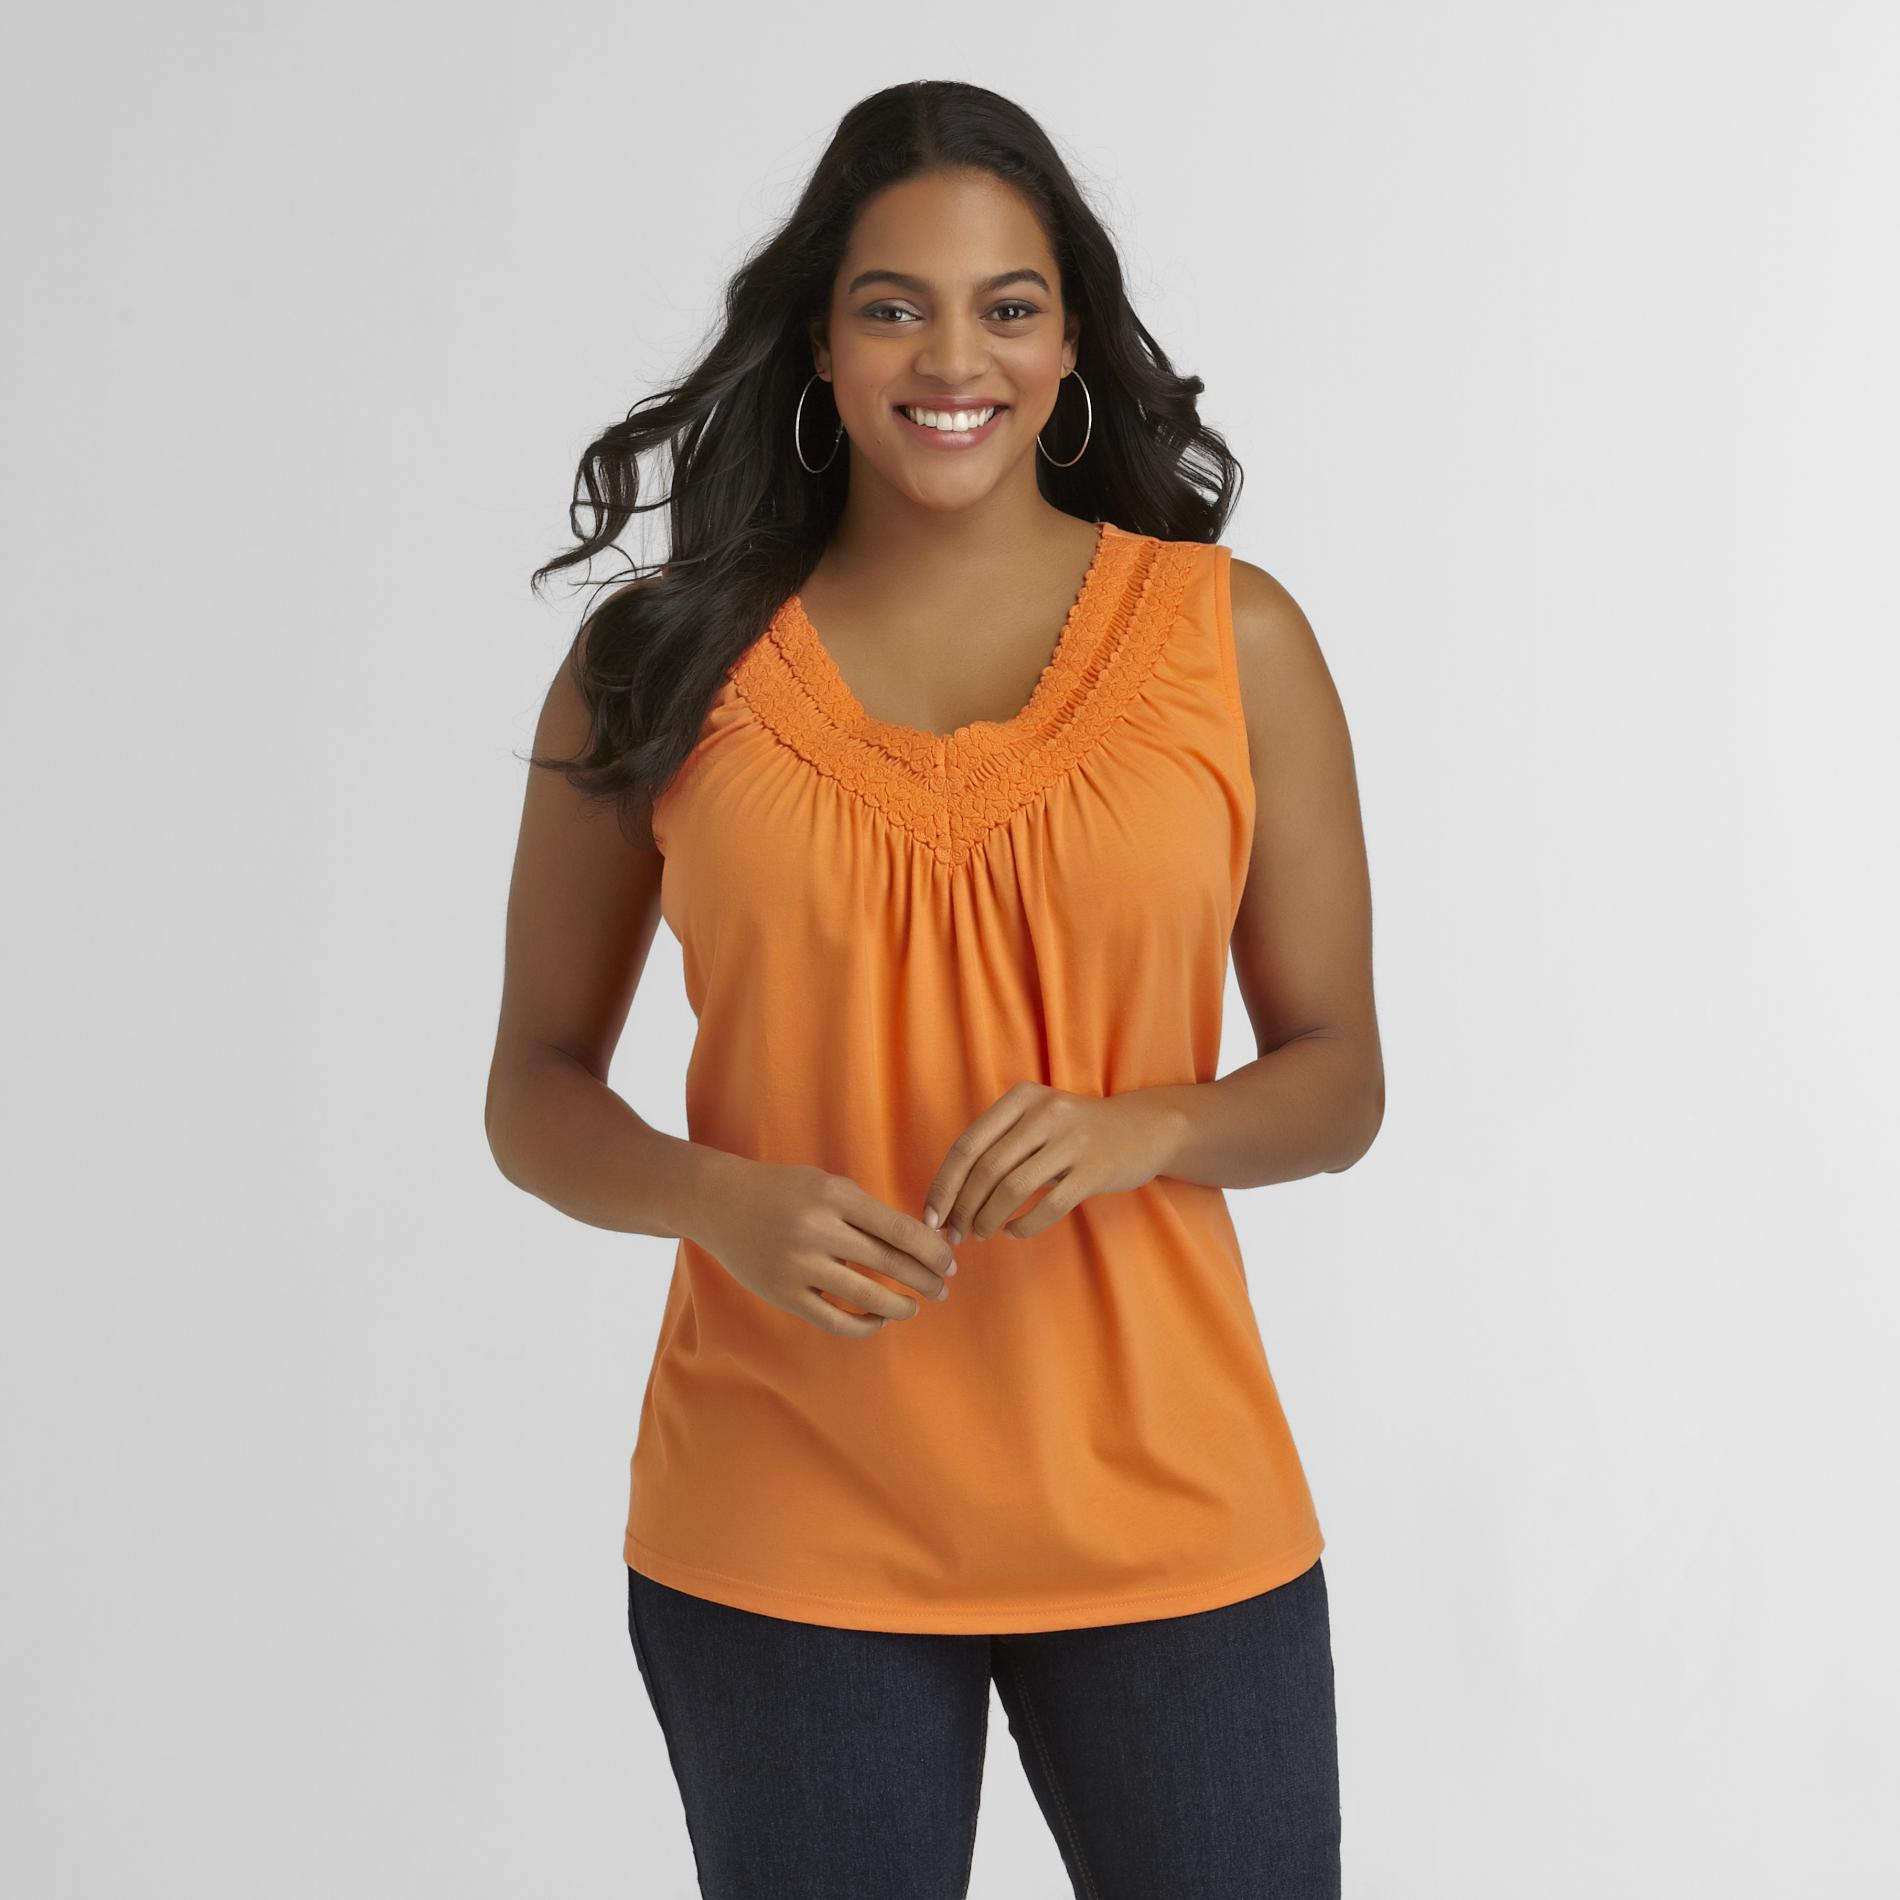 Basic Editions Women's Plus Crochet Tank Top at Kmart.com